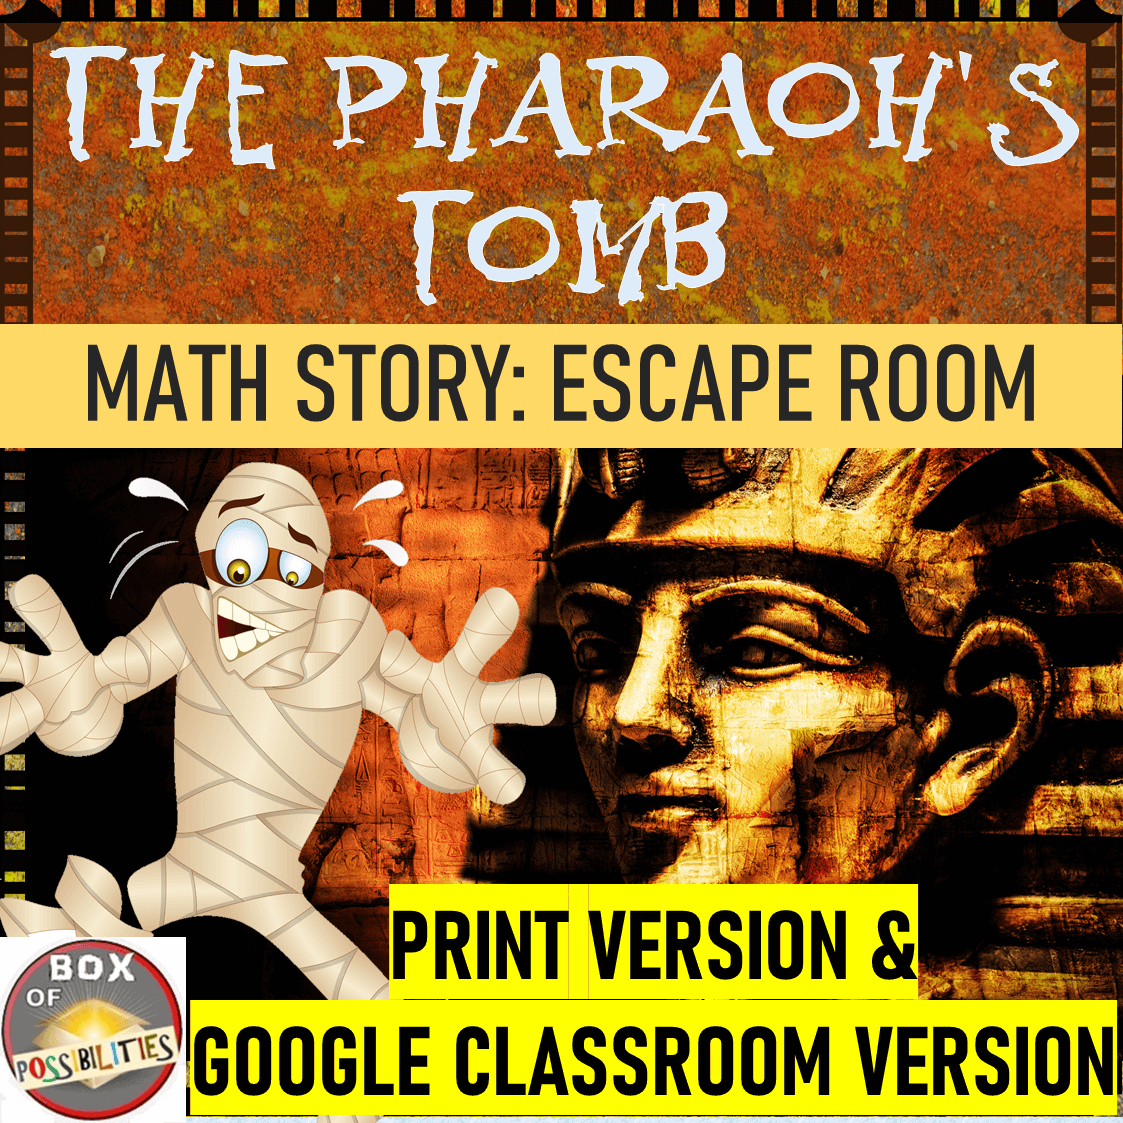 Egyptian Math Escape Room Story Use Math To Defeat The